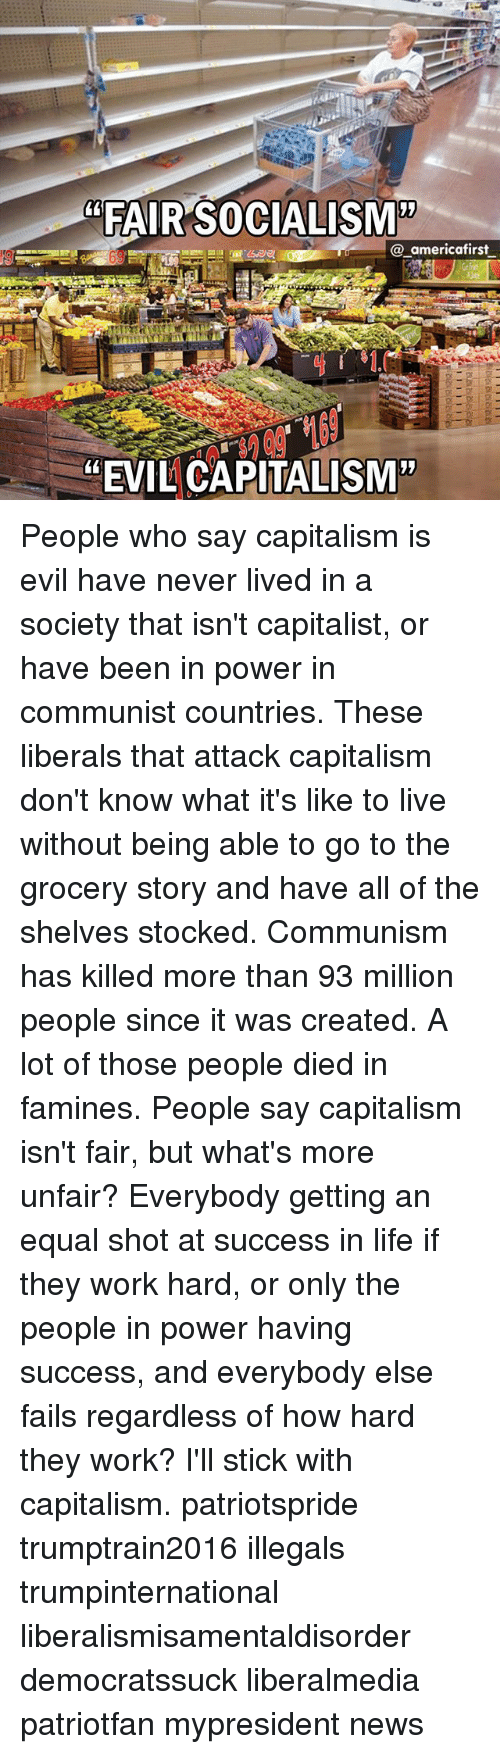 "Life, Memes, and News: ""FAIR SOCIALISM'""  @_americafirst  ""EVIL CAPITALISM"" People who say capitalism is evil have never lived in a society that isn't capitalist, or have been in power in communist countries. These liberals that attack capitalism don't know what it's like to live without being able to go to the grocery story and have all of the shelves stocked. Communism has killed more than 93 million people since it was created. A lot of those people died in famines. People say capitalism isn't fair, but what's more unfair? Everybody getting an equal shot at success in life if they work hard, or only the people in power having success, and everybody else fails regardless of how hard they work? I'll stick with capitalism. patriotspride trumptrain2016 illegals trumpinternational liberalismisamentaldisorder democratssuck liberalmedia patriotfan mypresident news"